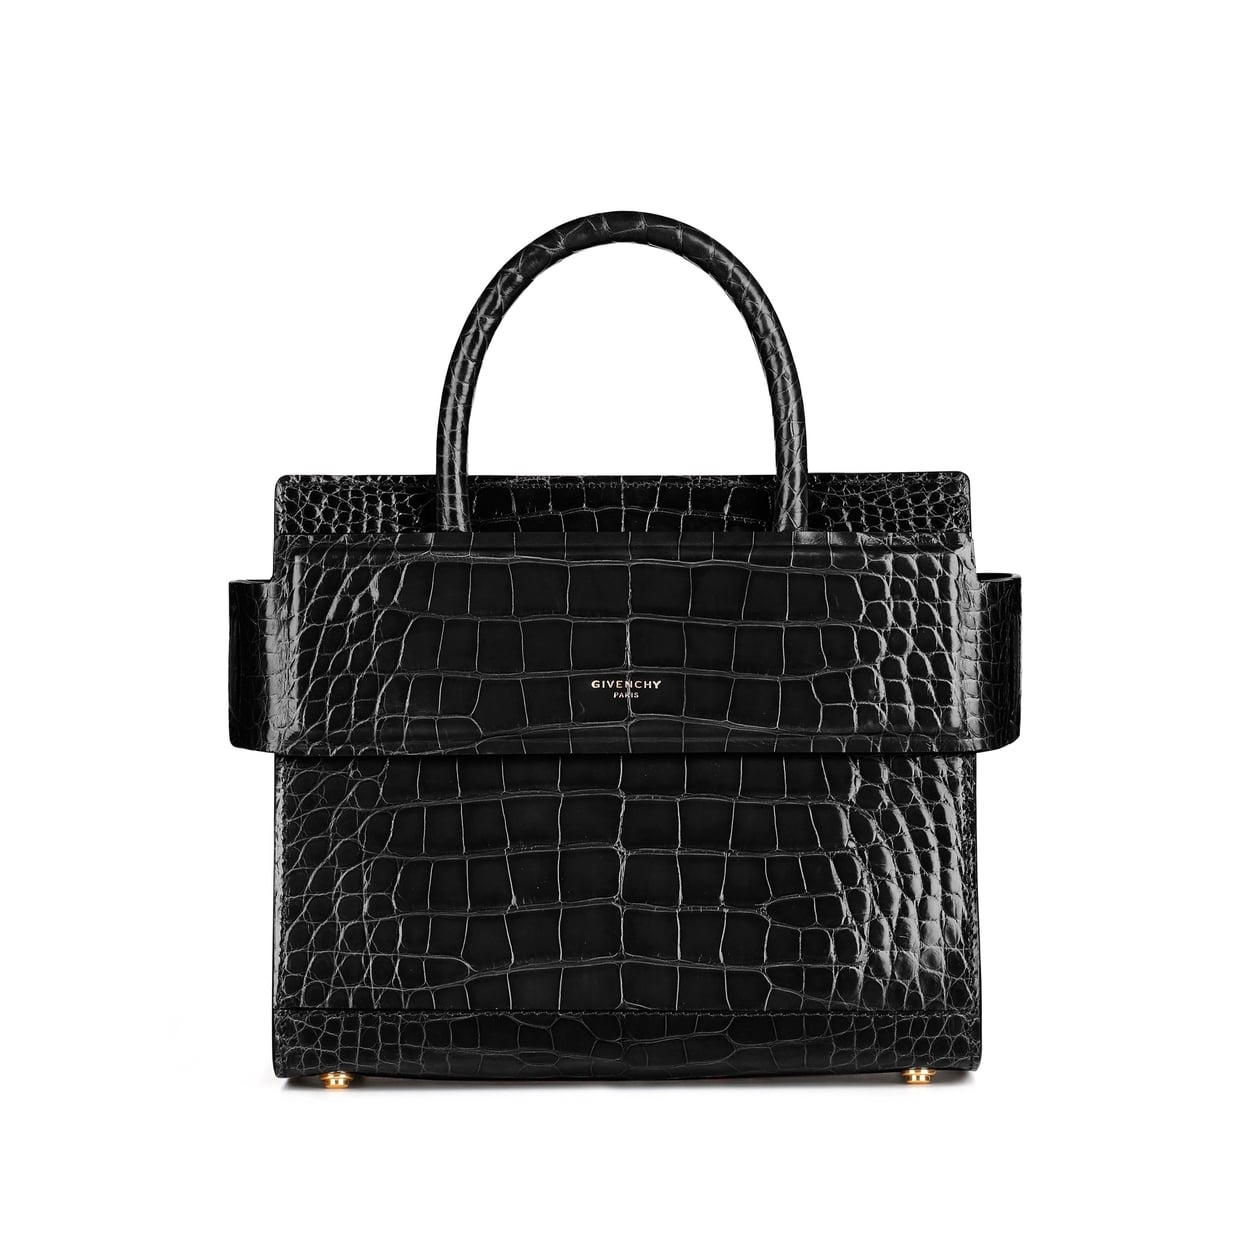 2016 Bag Colors Fall Givenchy Horizon Fashion New Spotted For cwqESYnnW1